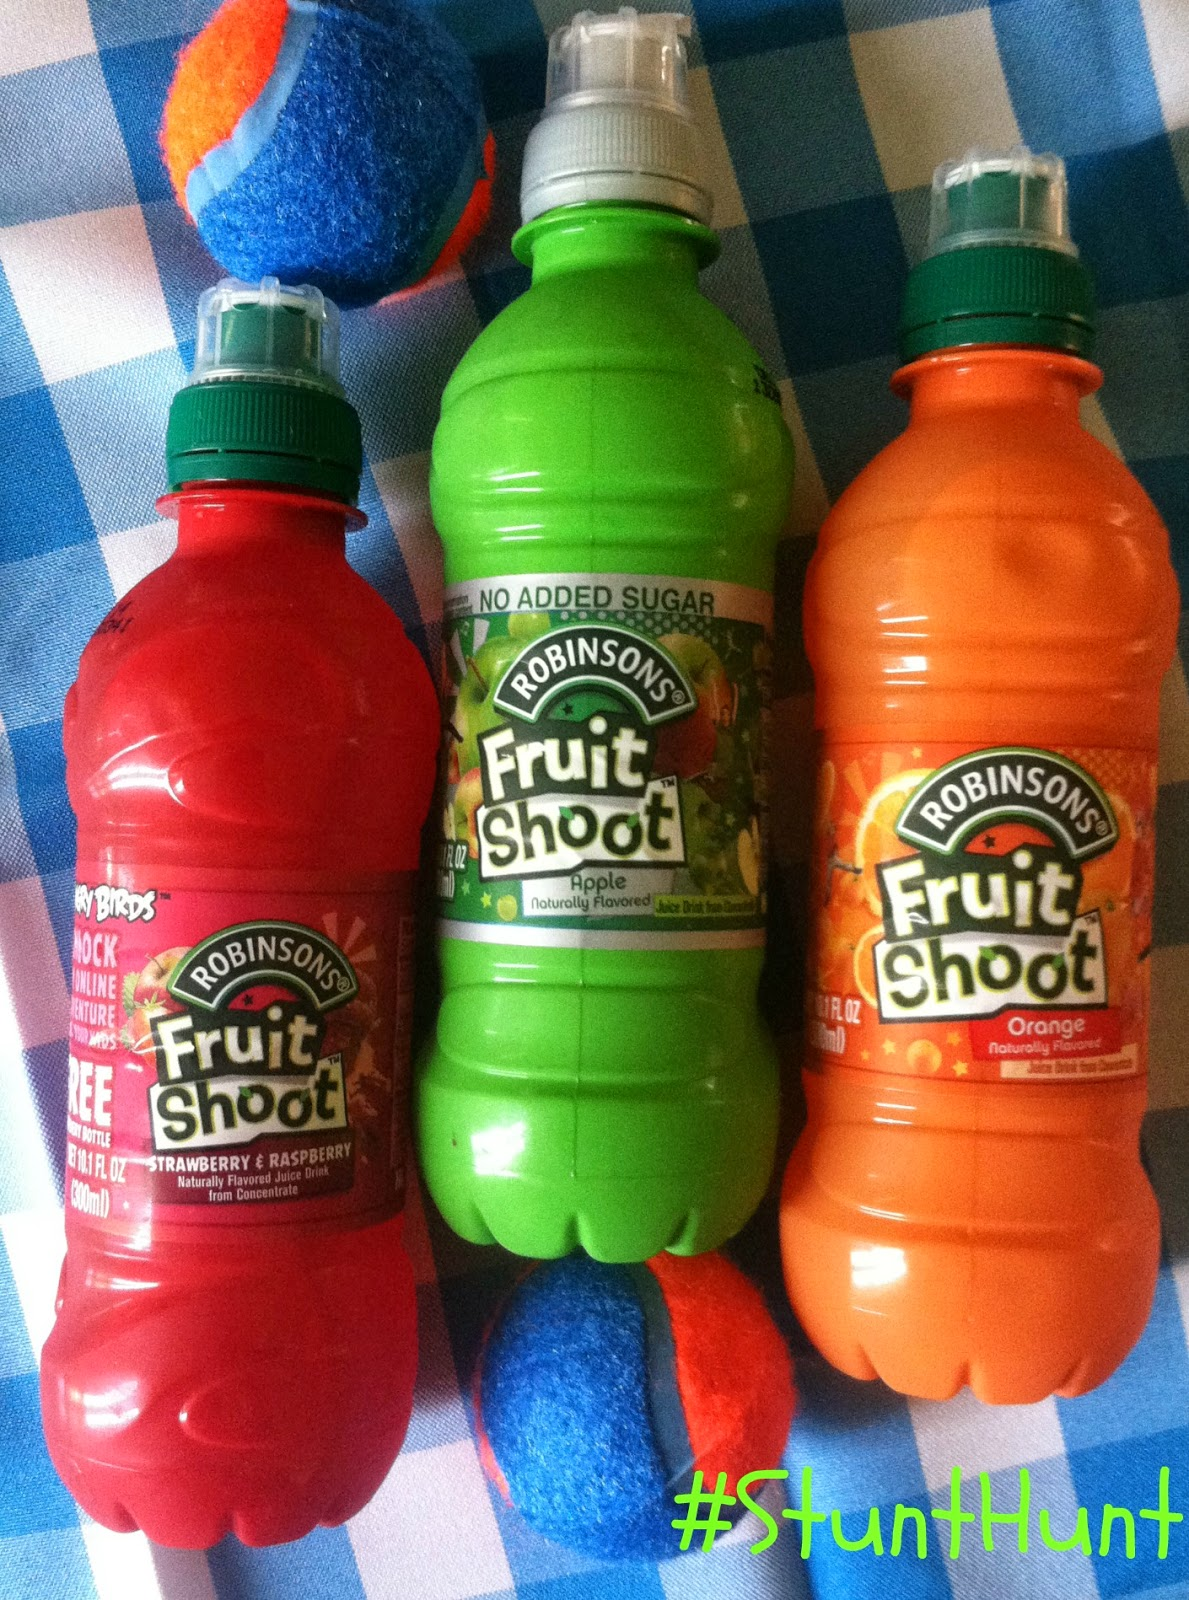 Shoot the fruit - Fruit Shoot Is Looking To Families Across The U S To Share Videos Of Your Kids Doing Amazingly Active Stunts Here S The Trick Your Submission Has To